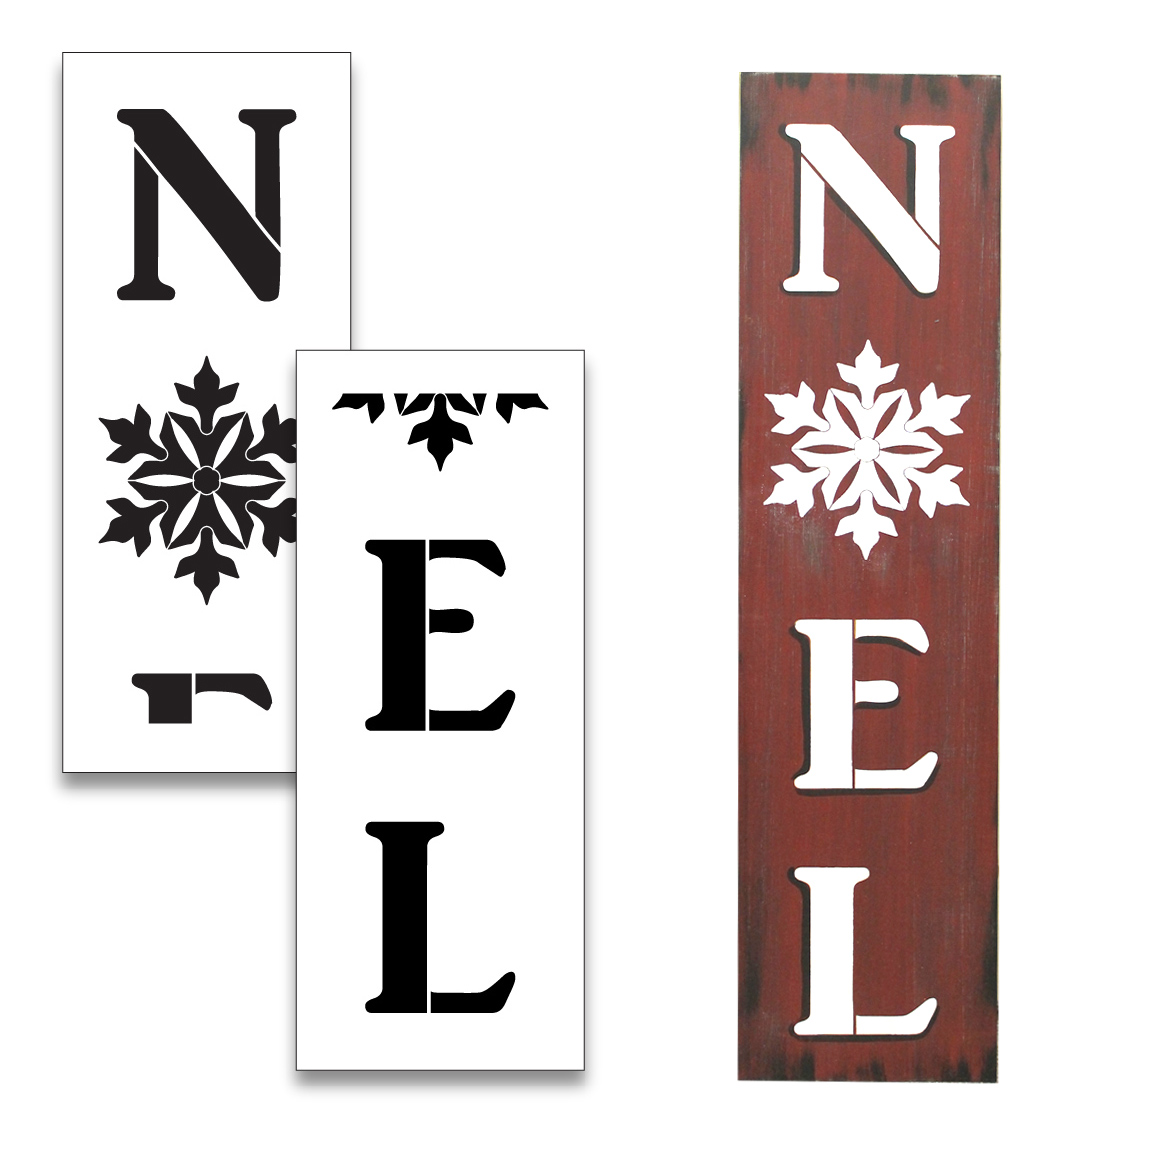 Noel Tall Porch Stencil with Snowflakes by StudioR12 | 2 Piece | DIY Large Vertical Christmas Holiday Home Decor | Craft & Paint Winter Wood Leaner Signs | Reusable Mylar Template | Size 4ft